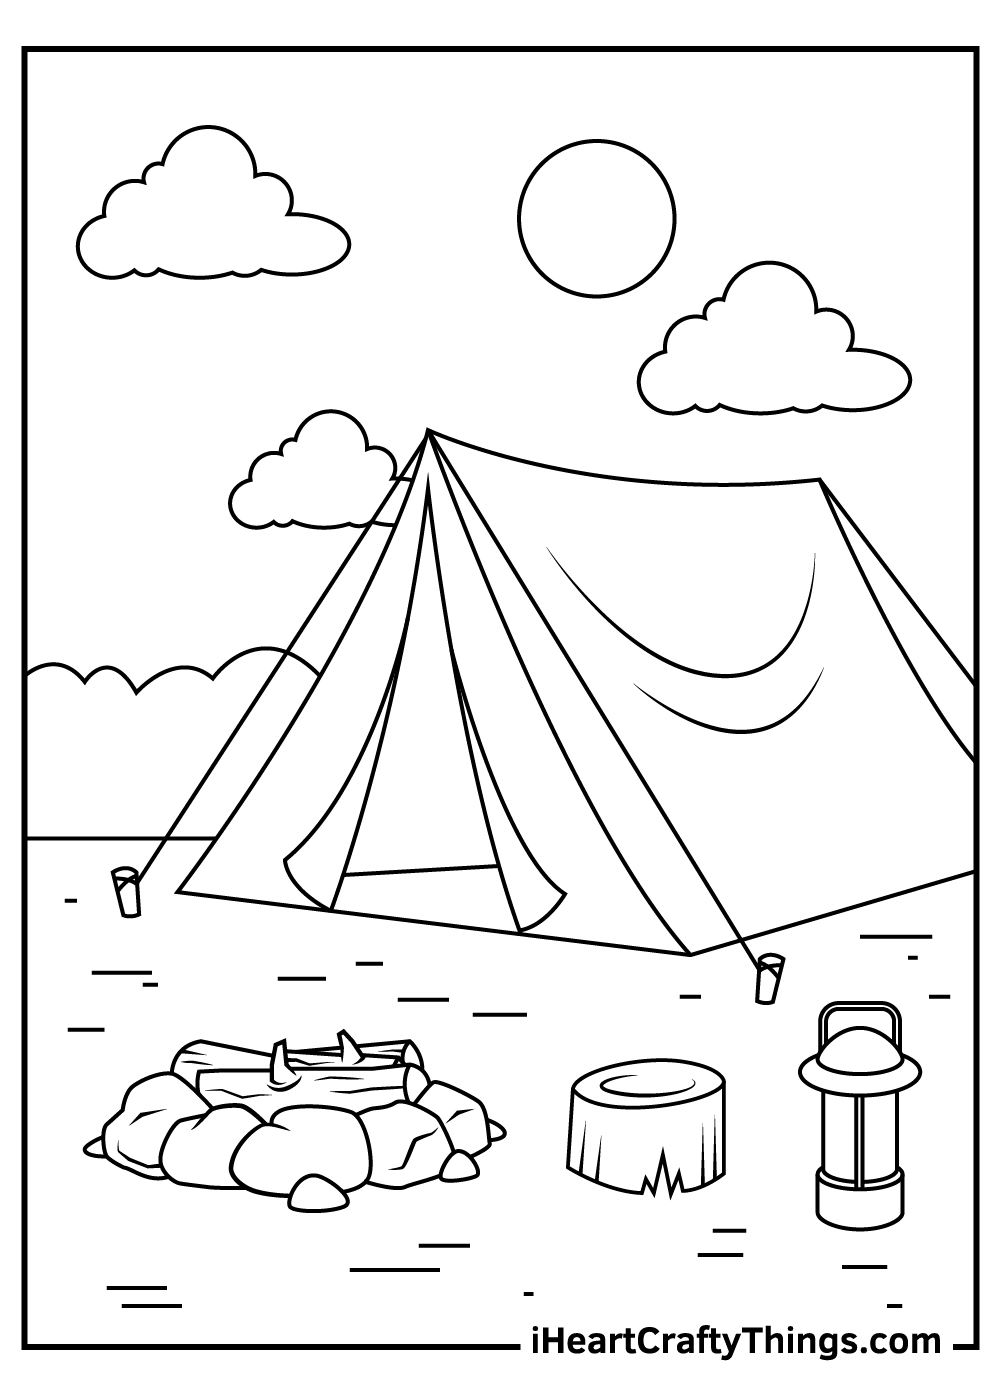 easy camping coloring pages for toddlers